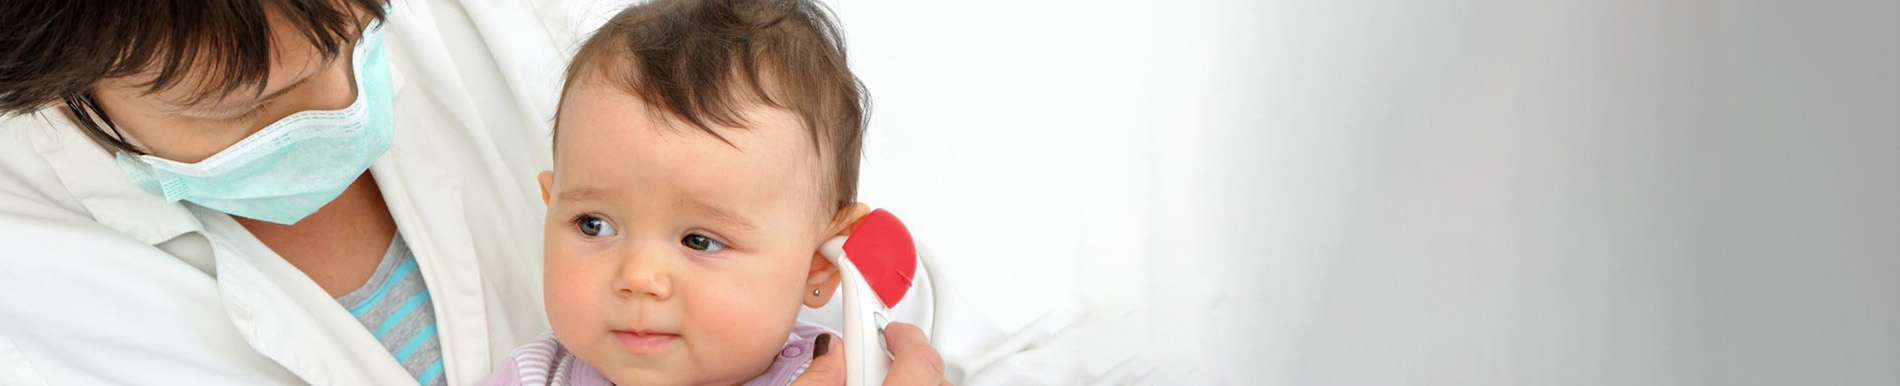 https://www.healthychildren.org/SiteCollectionImage-Homepage-Banners/pediatricianwithmaskbanner_es.jpg?csf=1&e=H0WhSR